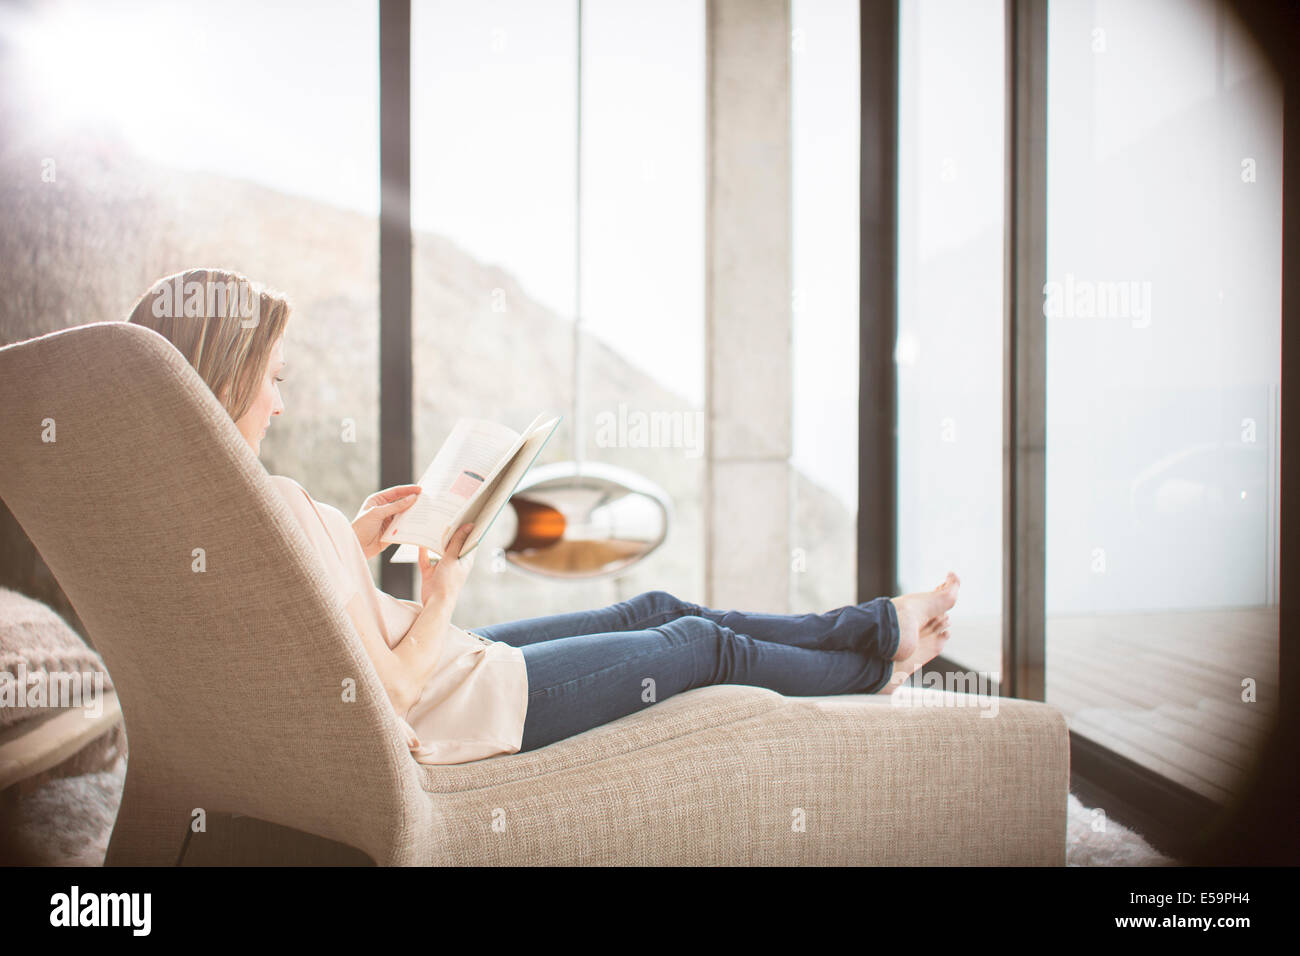 Woman reading on sofa in modern living room - Stock Image